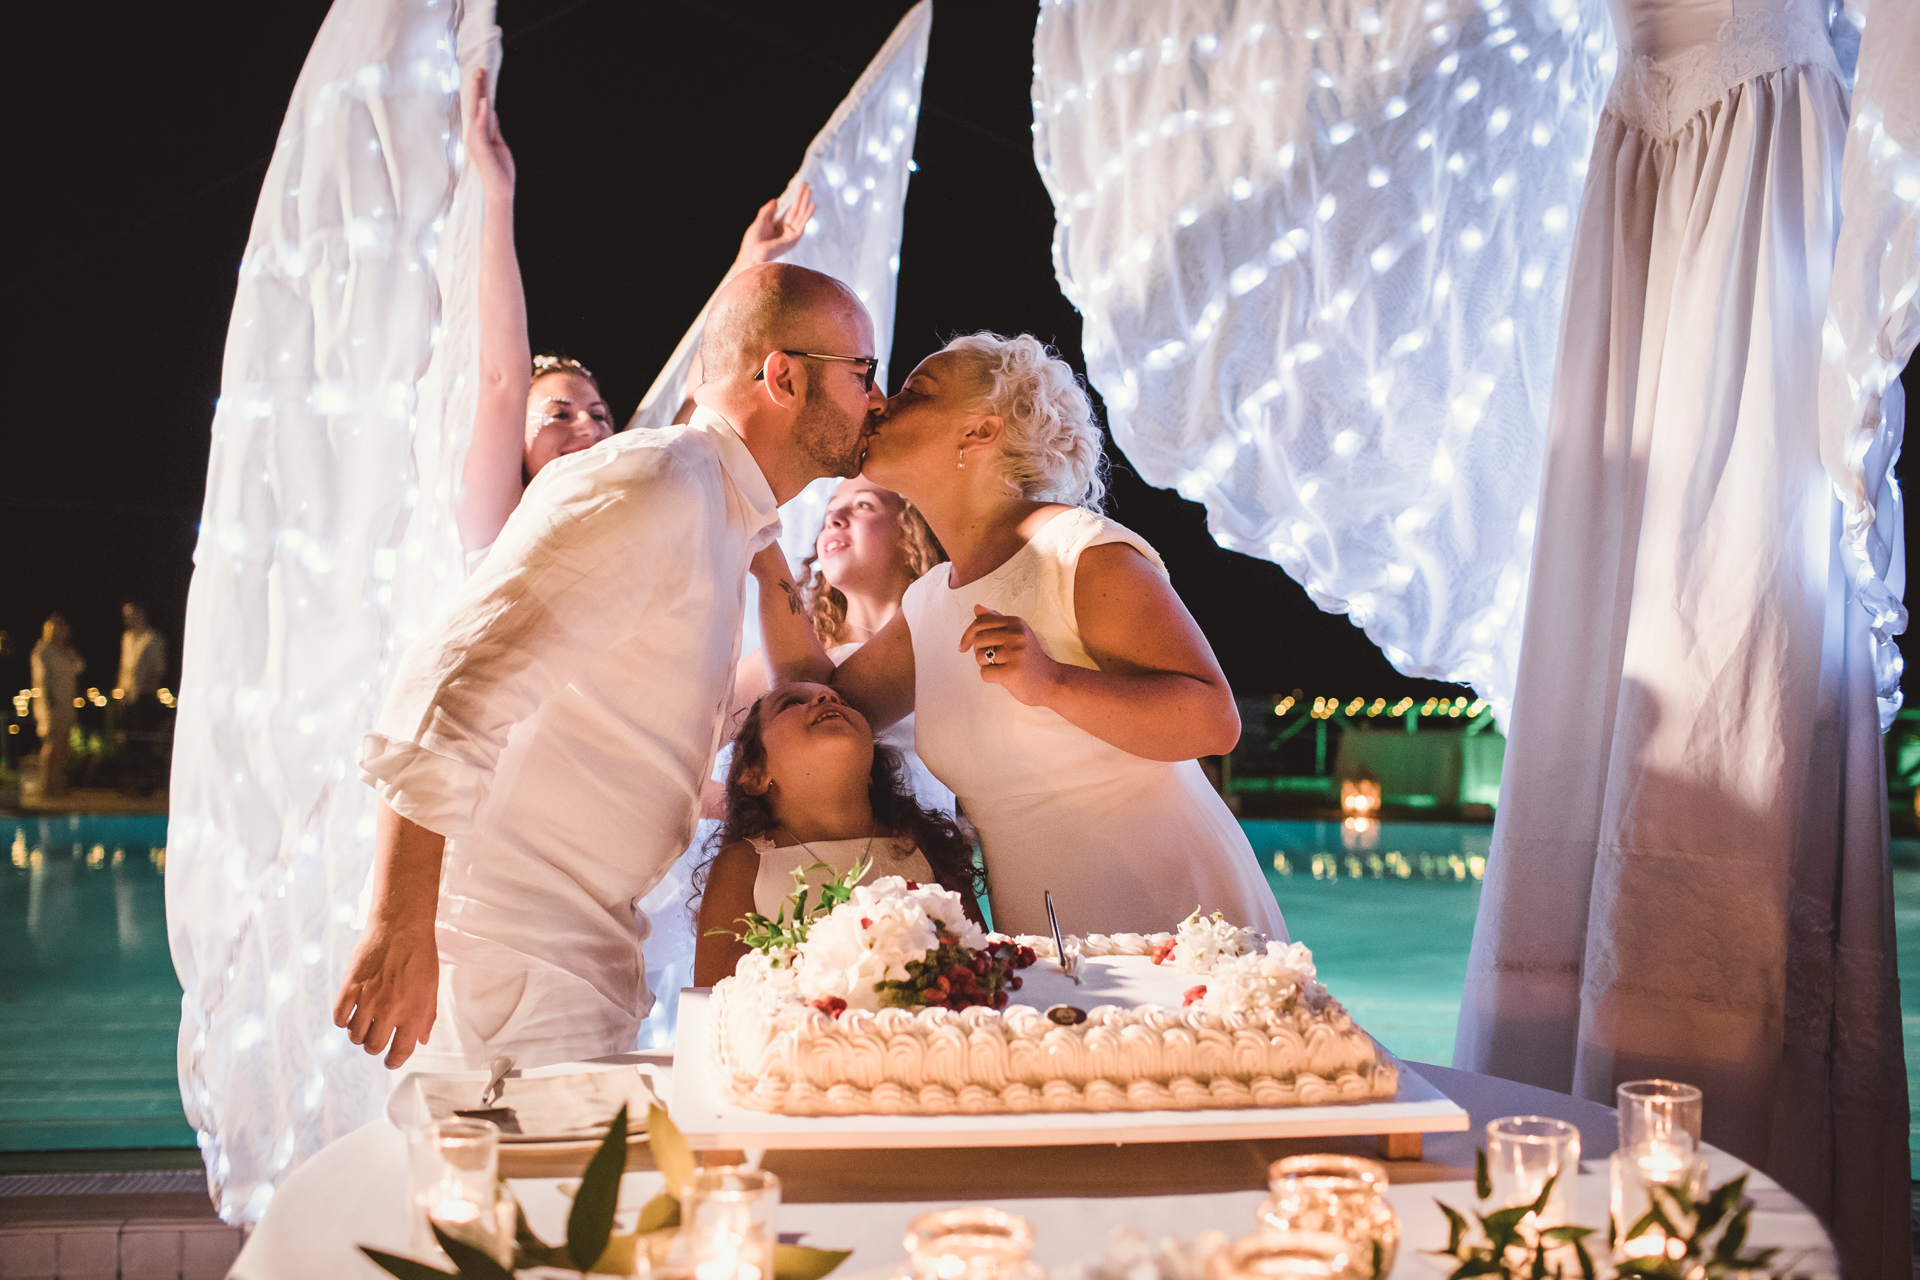 Italy Elopement Image from Da Gelsomina - Maresca | the couple shares a kiss over their wedding cake